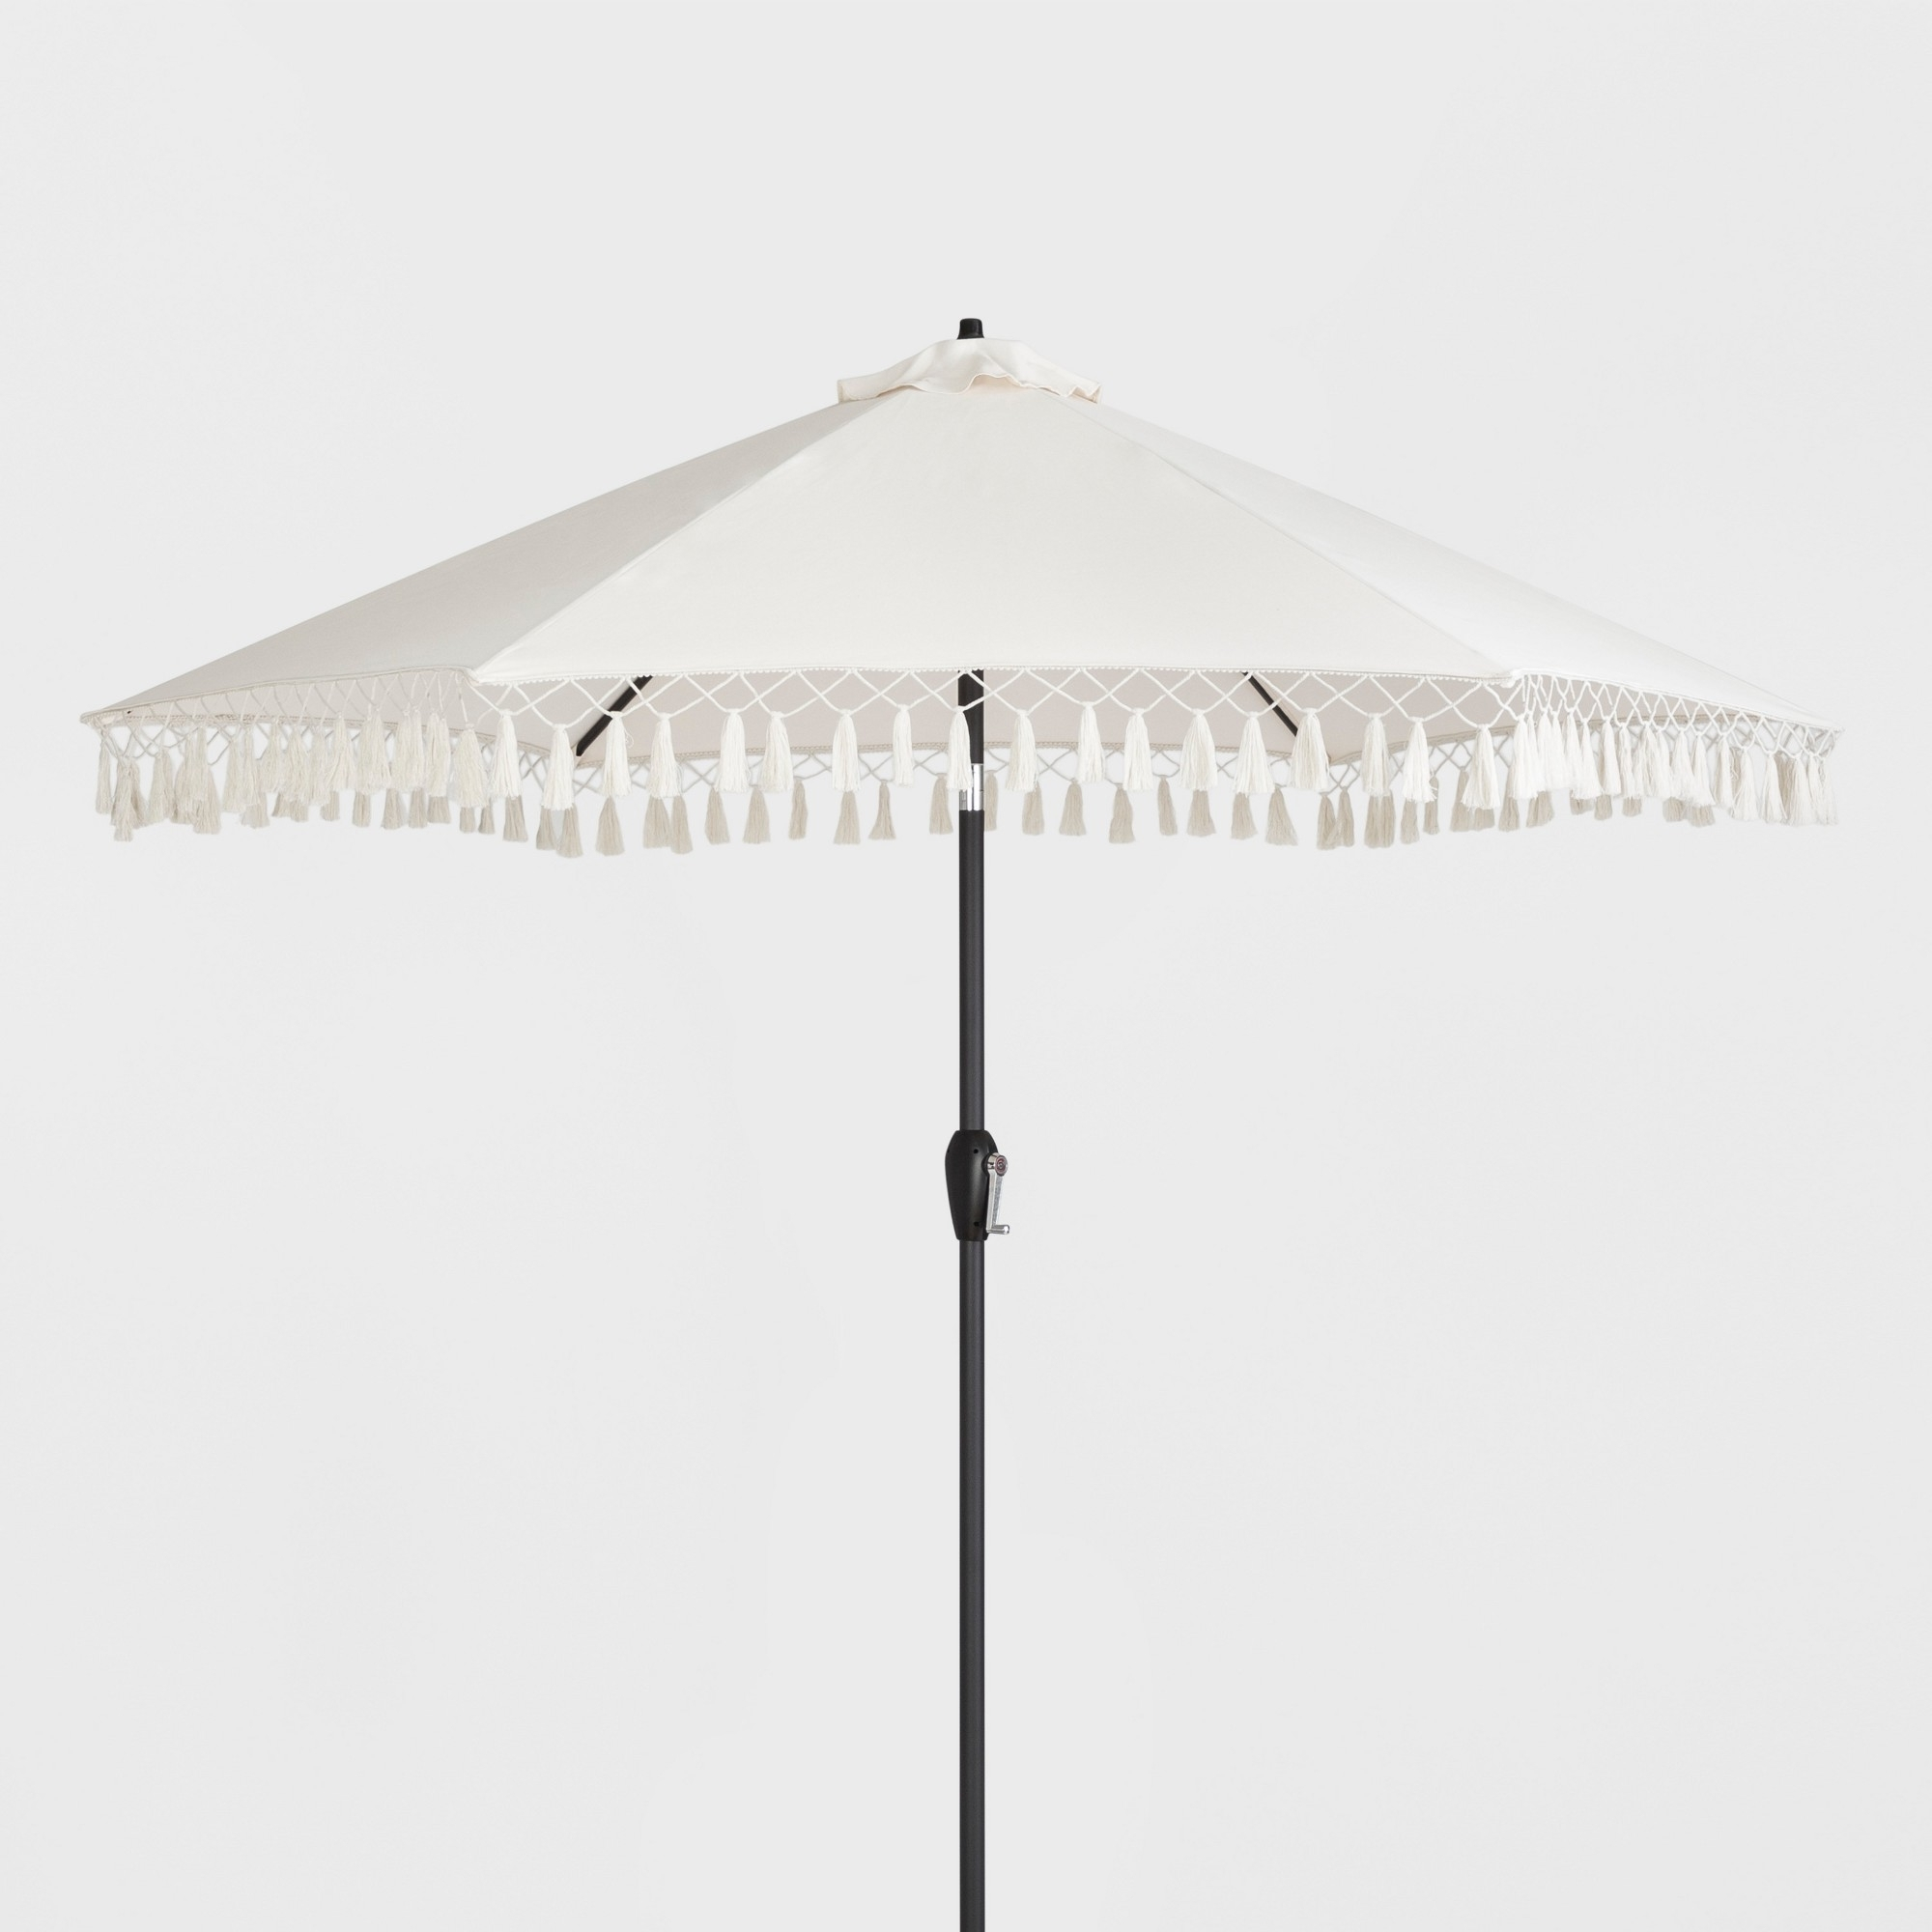 Most Recent Patio Umbrellas With Fringe Throughout 9' Patio Umbrella With Fringe – Beige – Opalhouse (View 9 of 20)